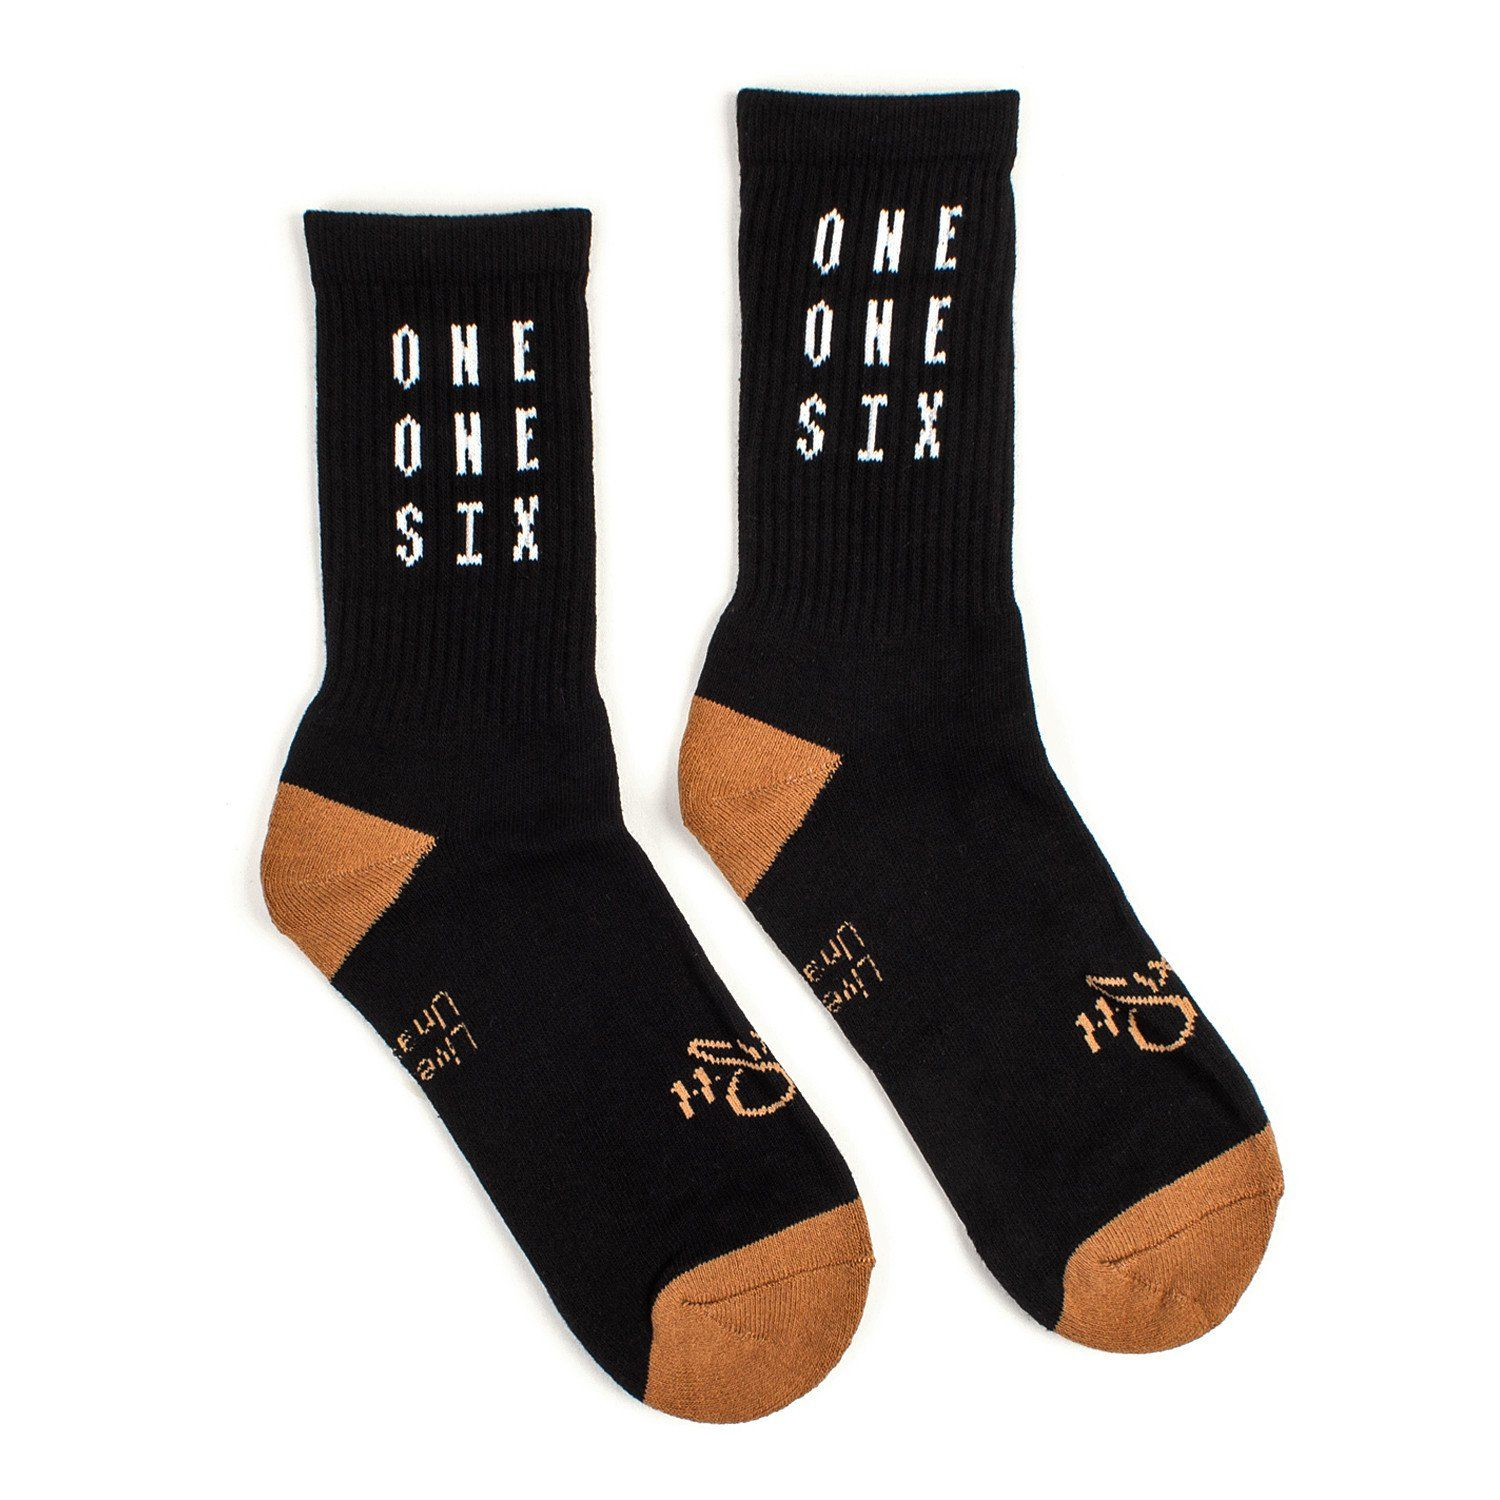 Reach Records 'One One Six' Socks - Brown & Black